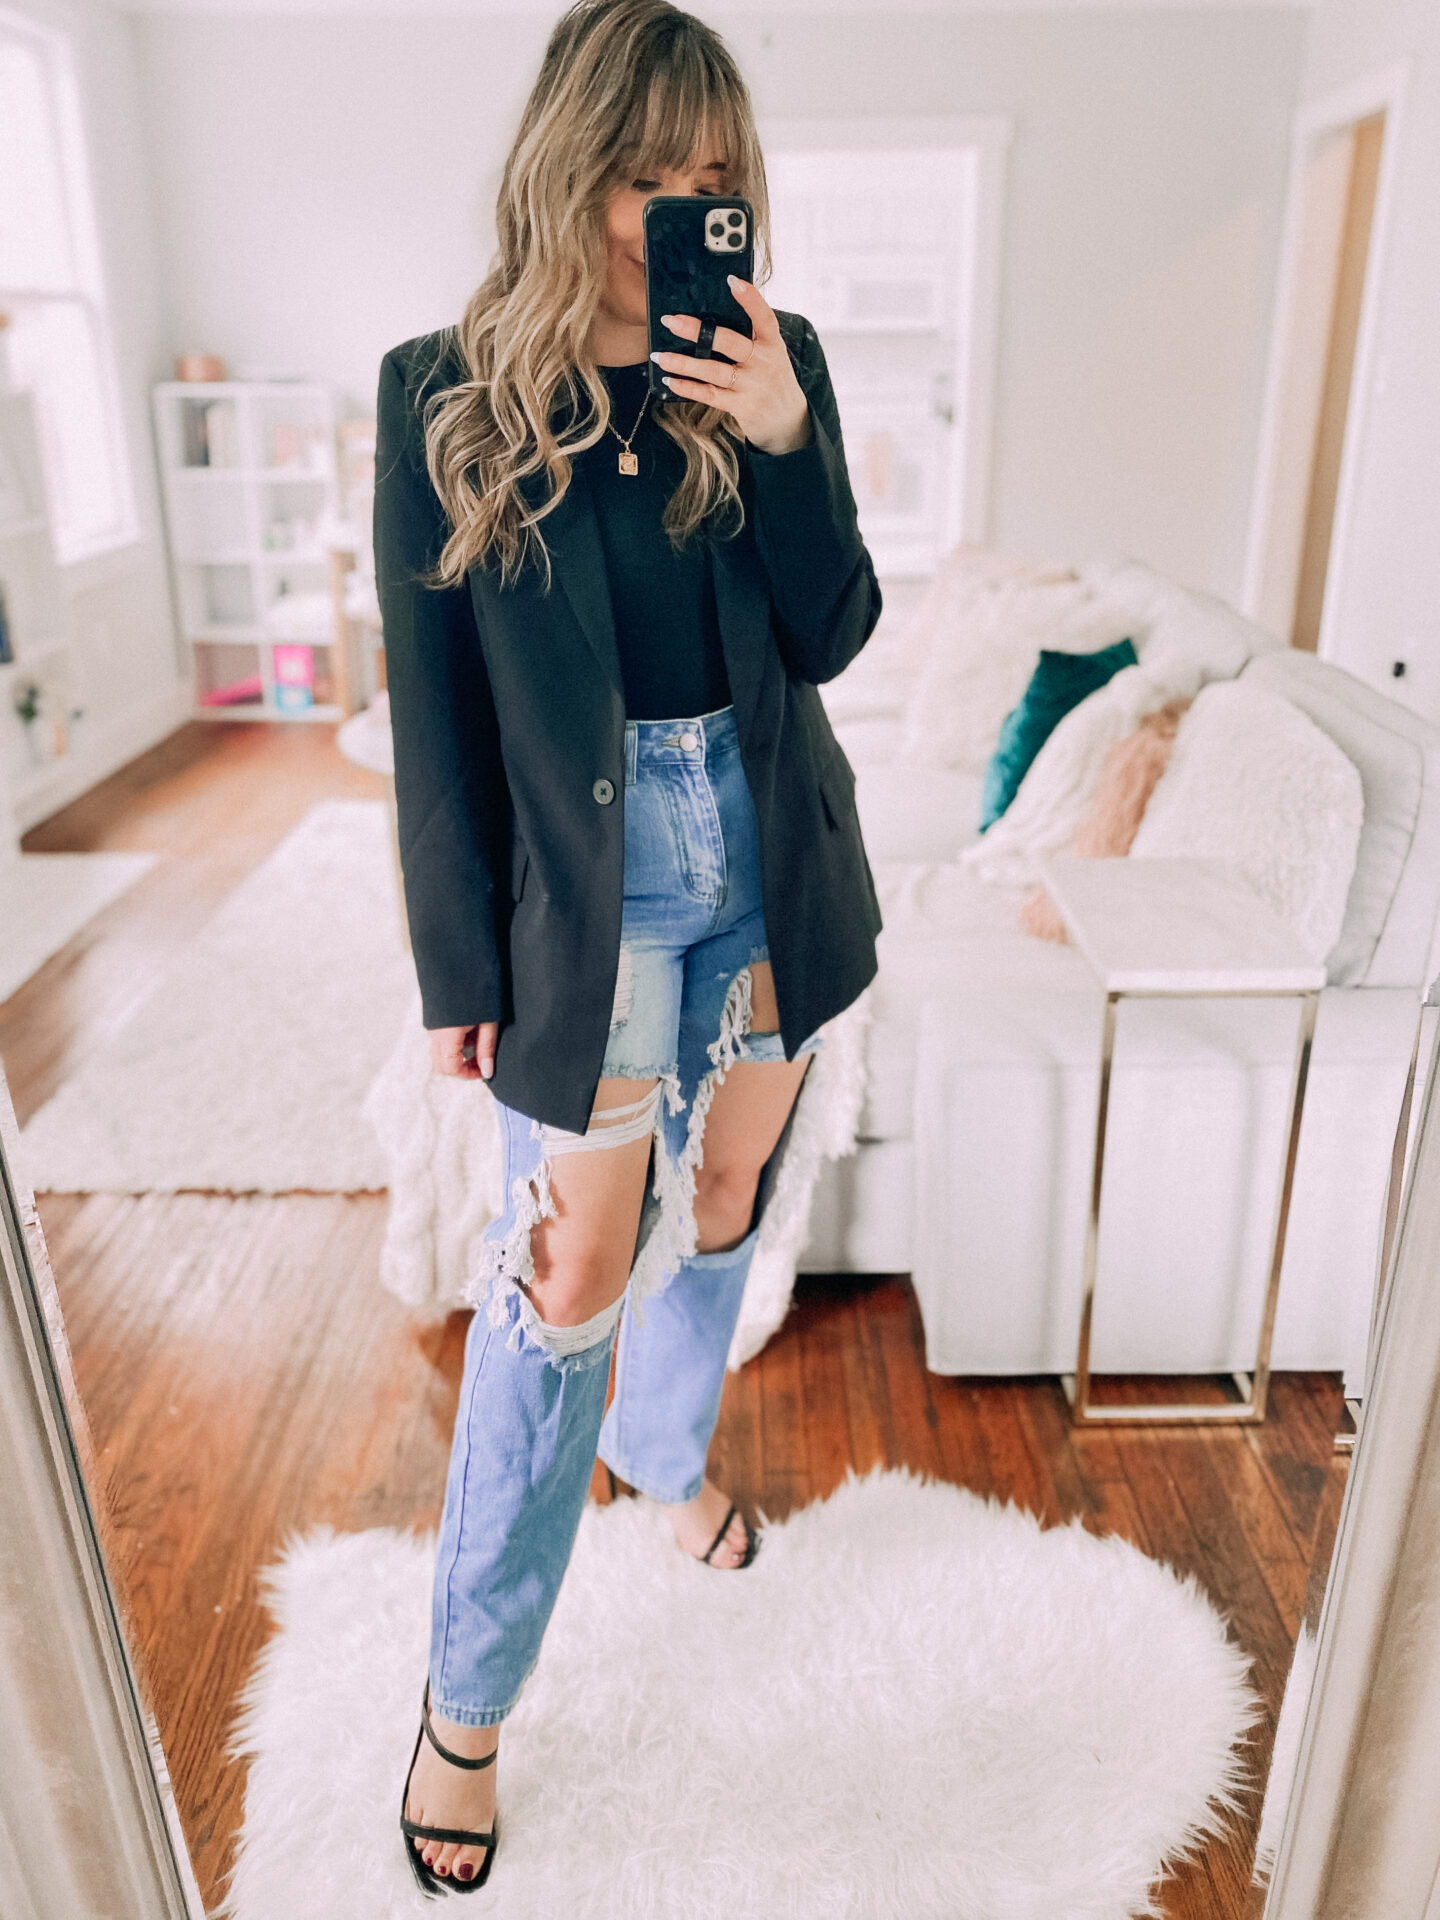 Bodysuit and jeans paired with an oversized blazer